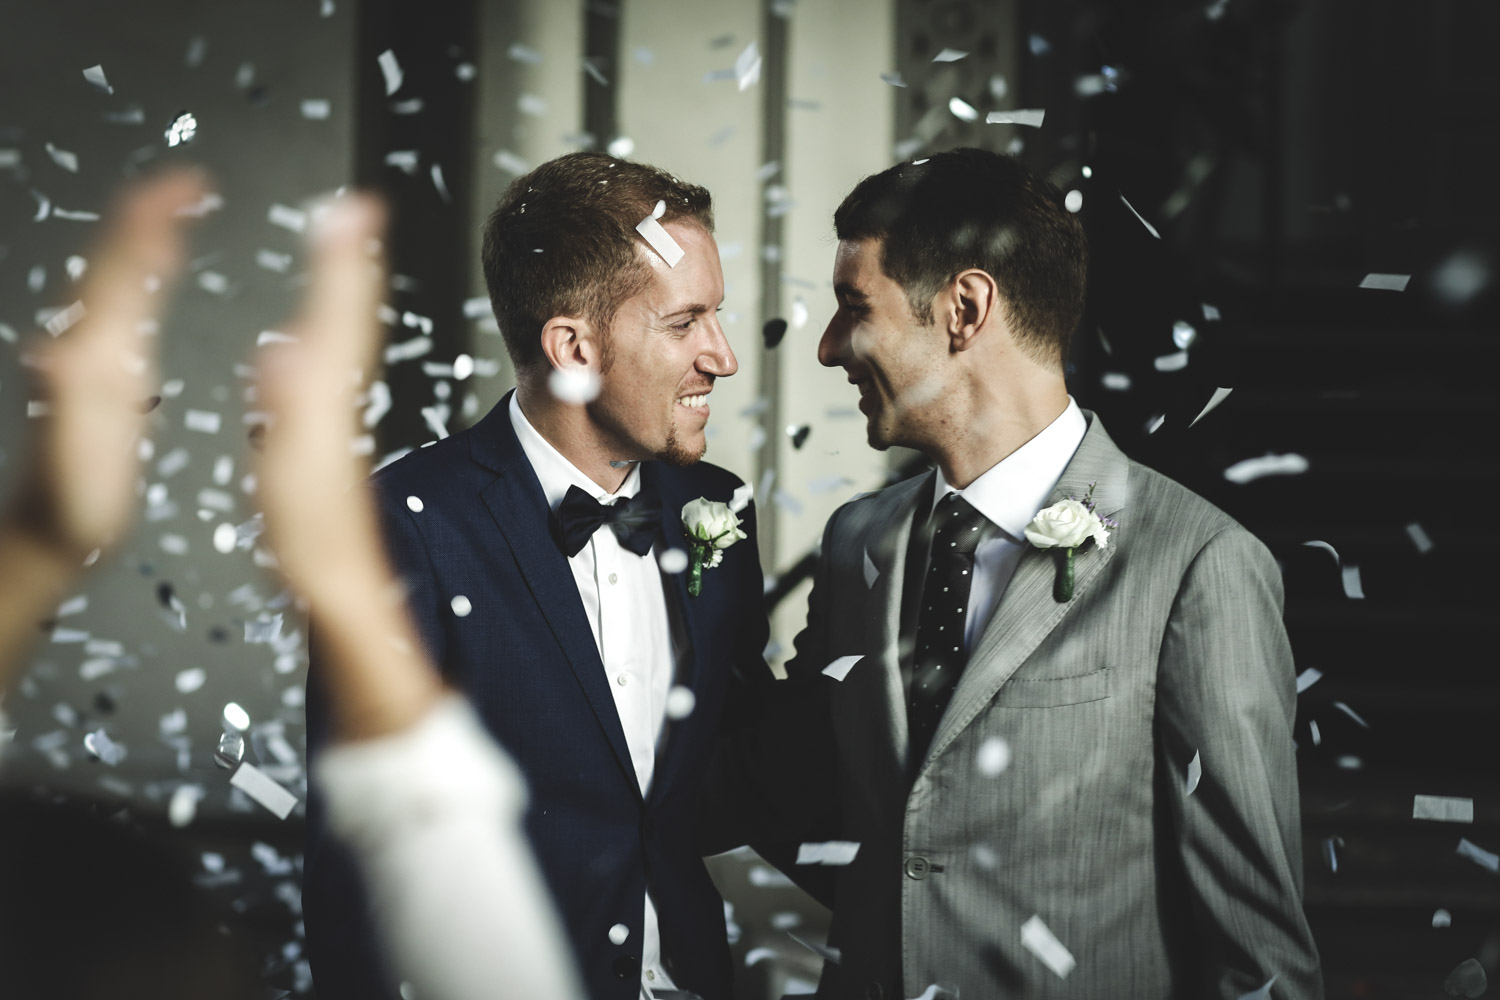 monica-sica_photography_trattoria-revelli_wedding-gay_torino_day_33